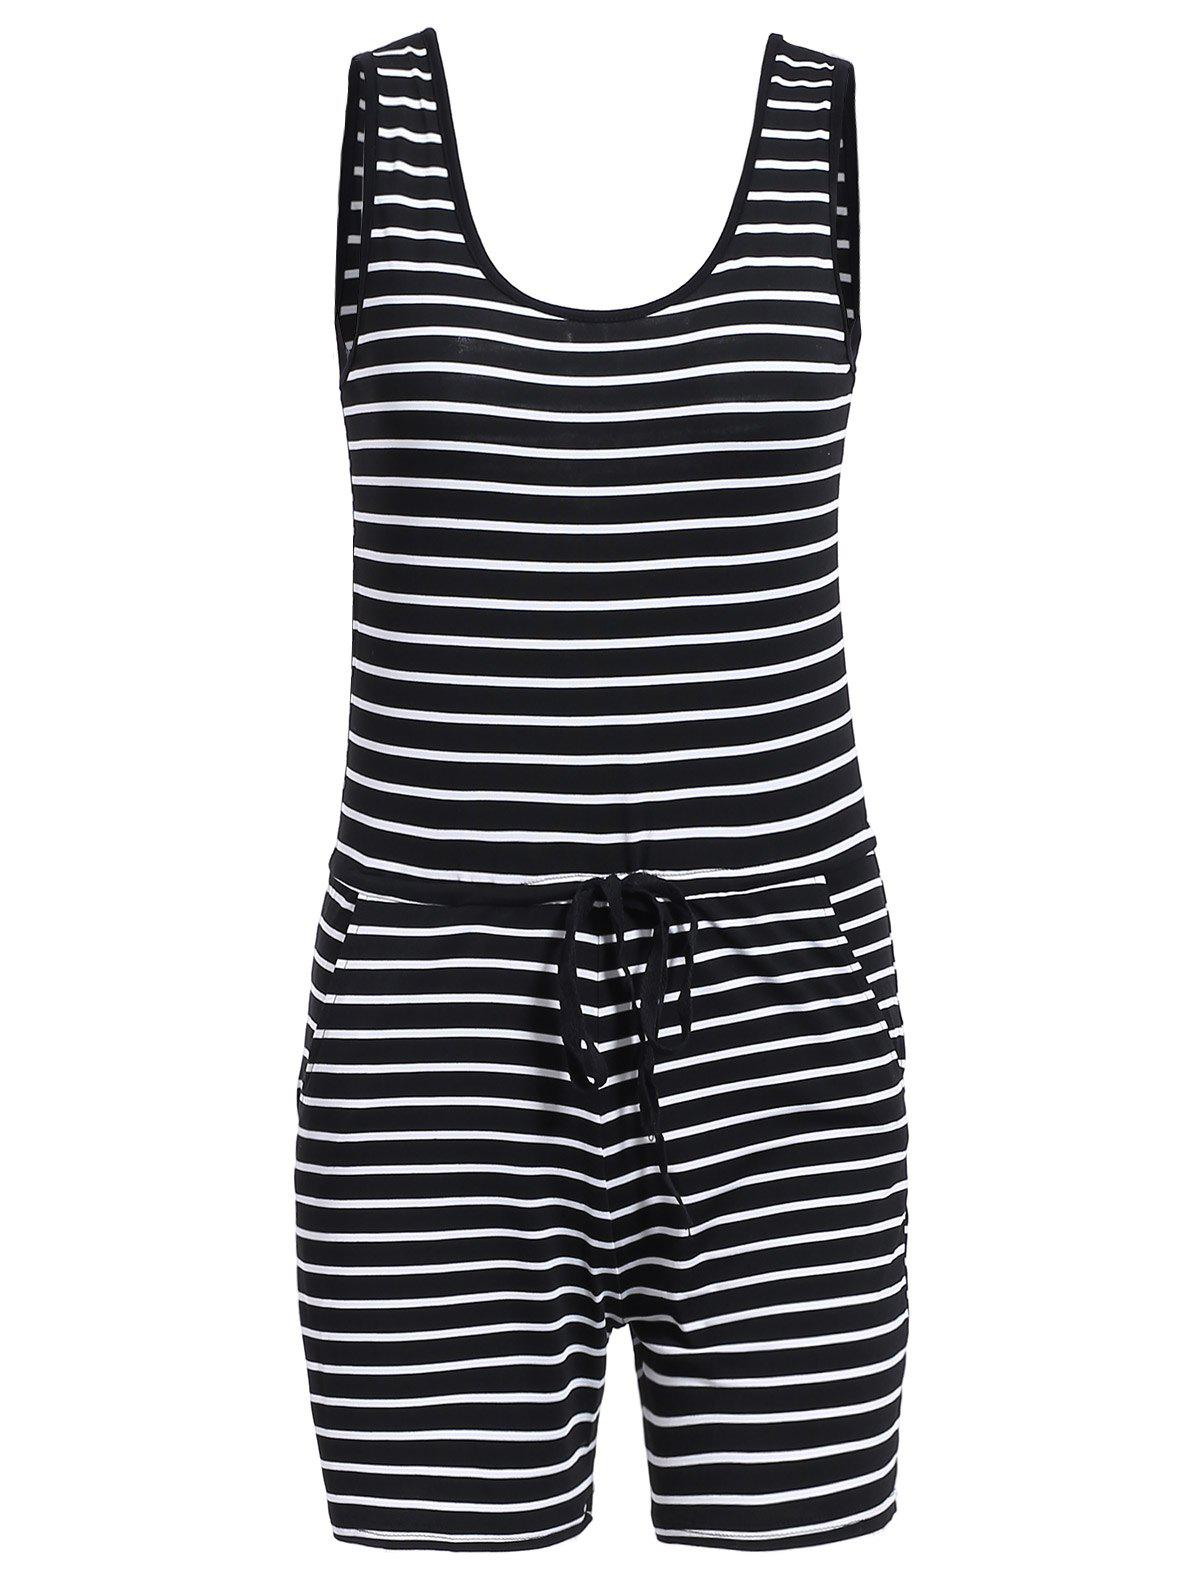 Chic Casual U-Neck Striped Sleeveless Romper For Women